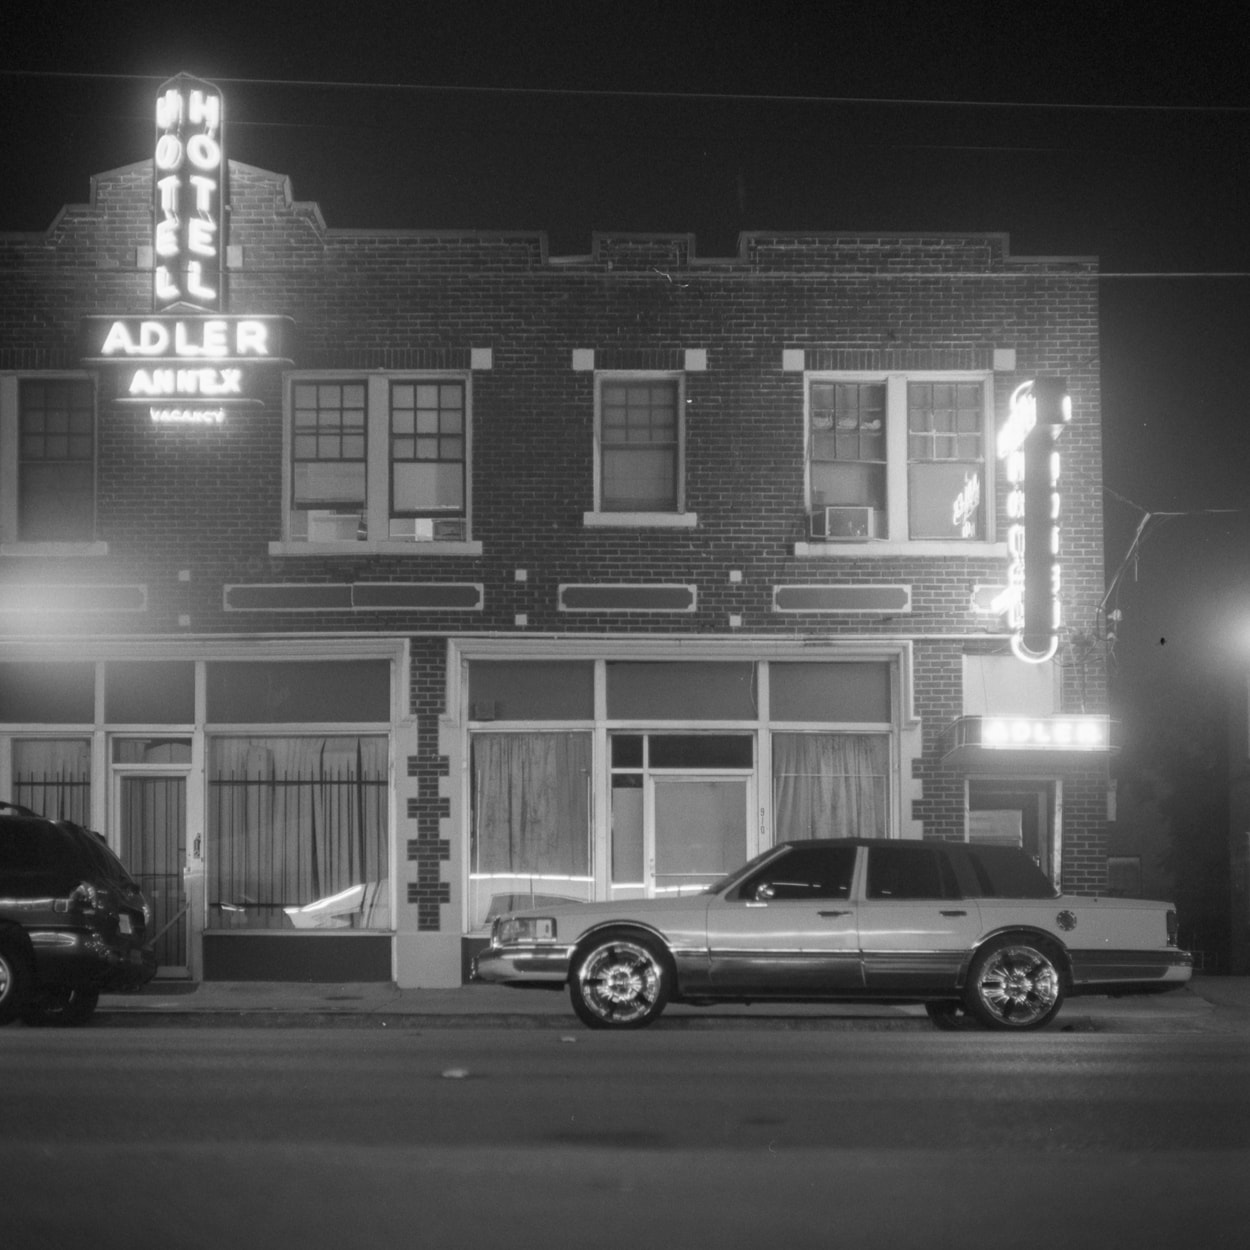 The Adler Hotel at night in the Old East Dallas neighborhood